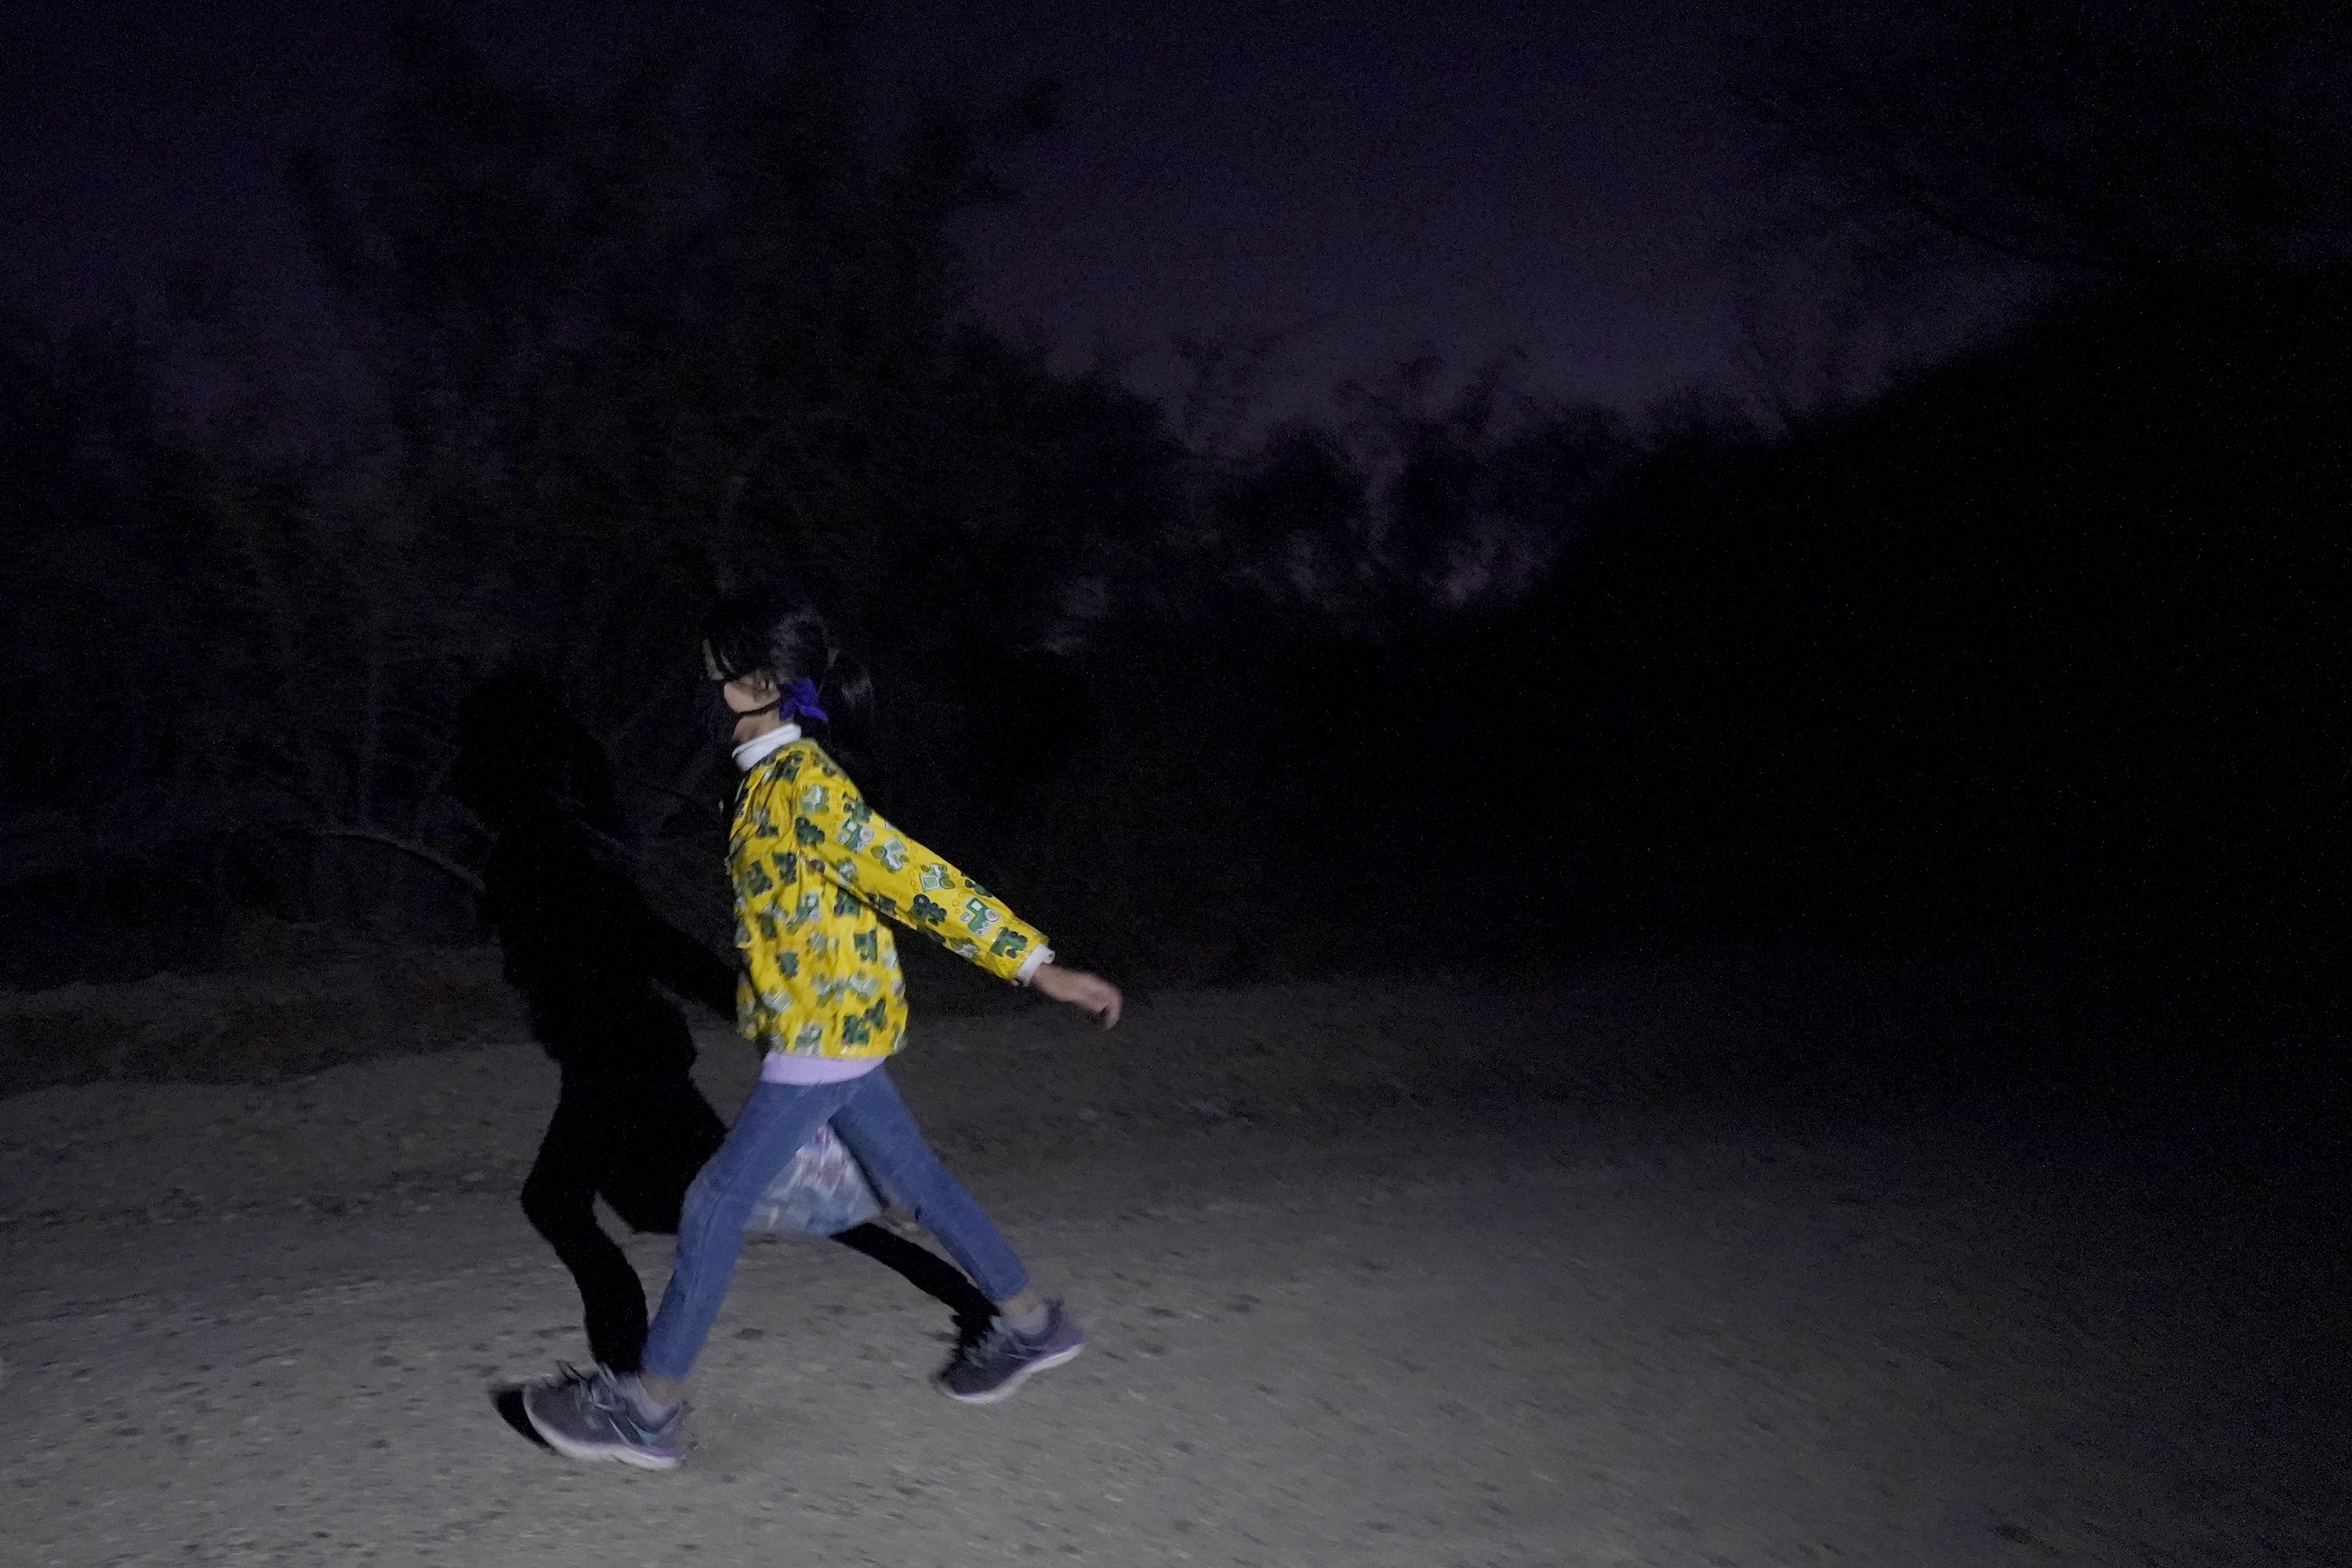 A young girl walks quickly on a path at night